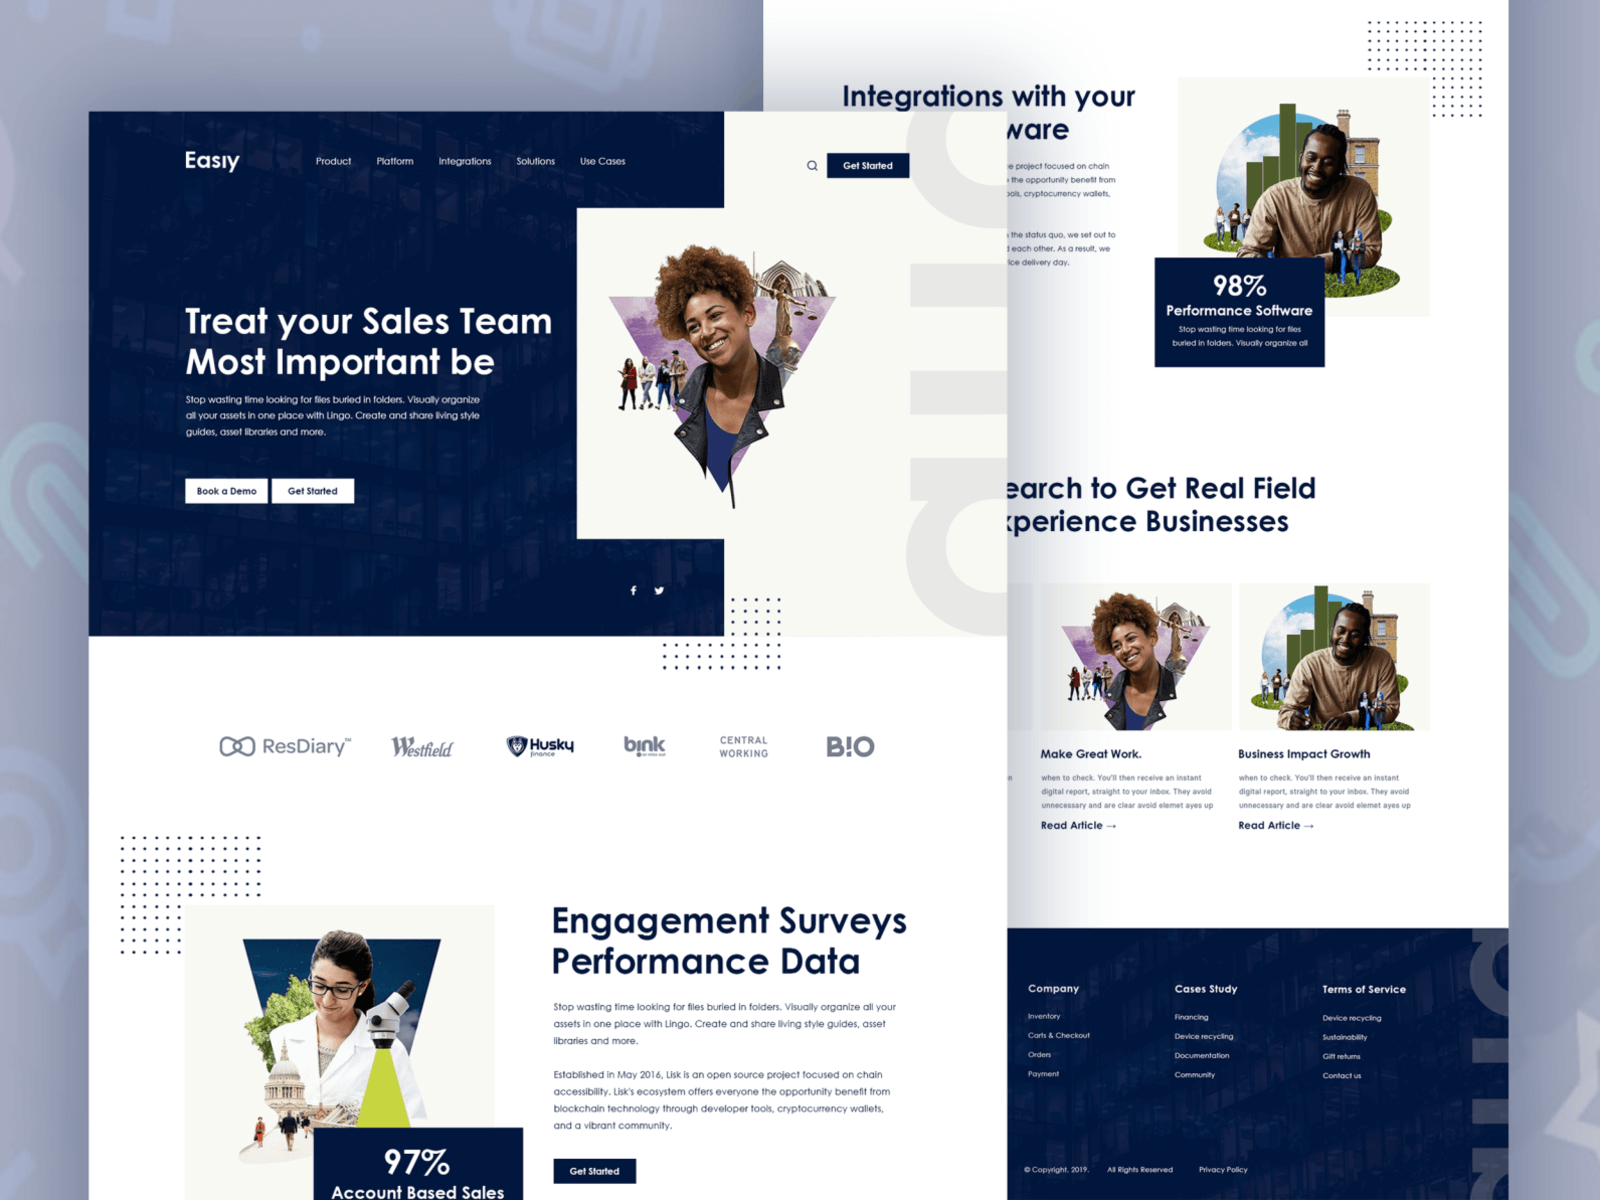 Landing page design for Easiy